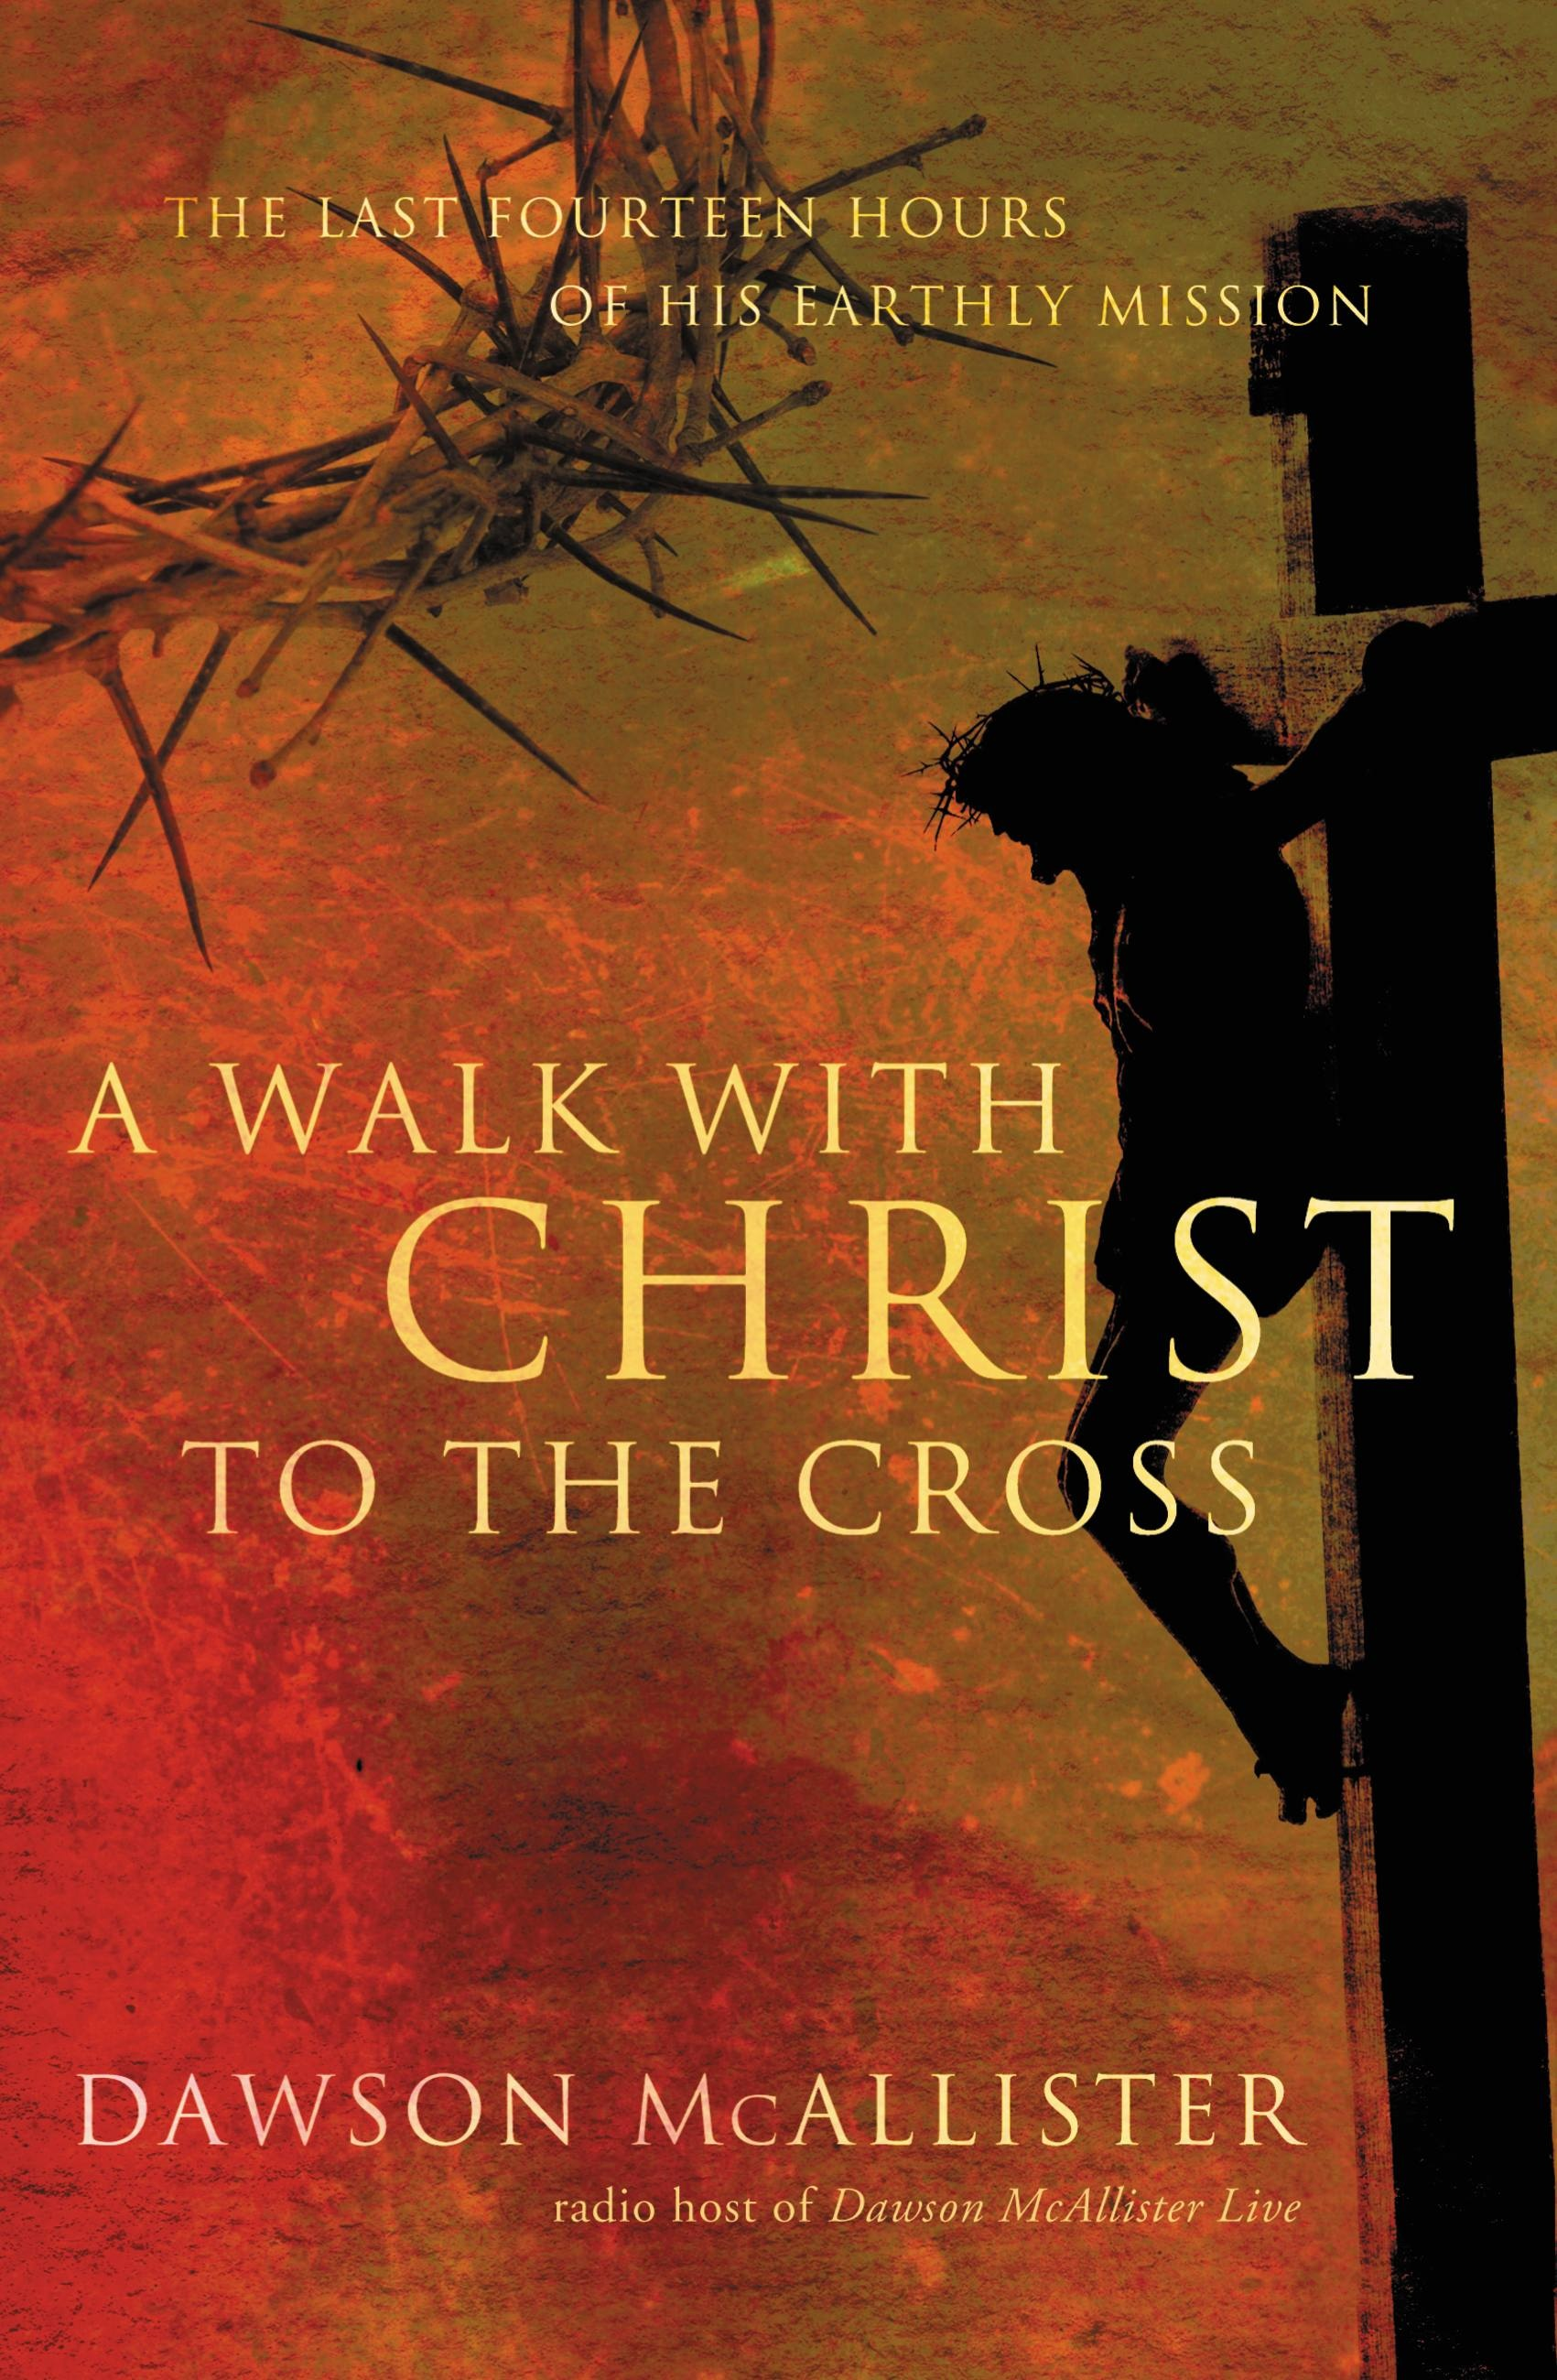 A Walk with Christ to the Cross